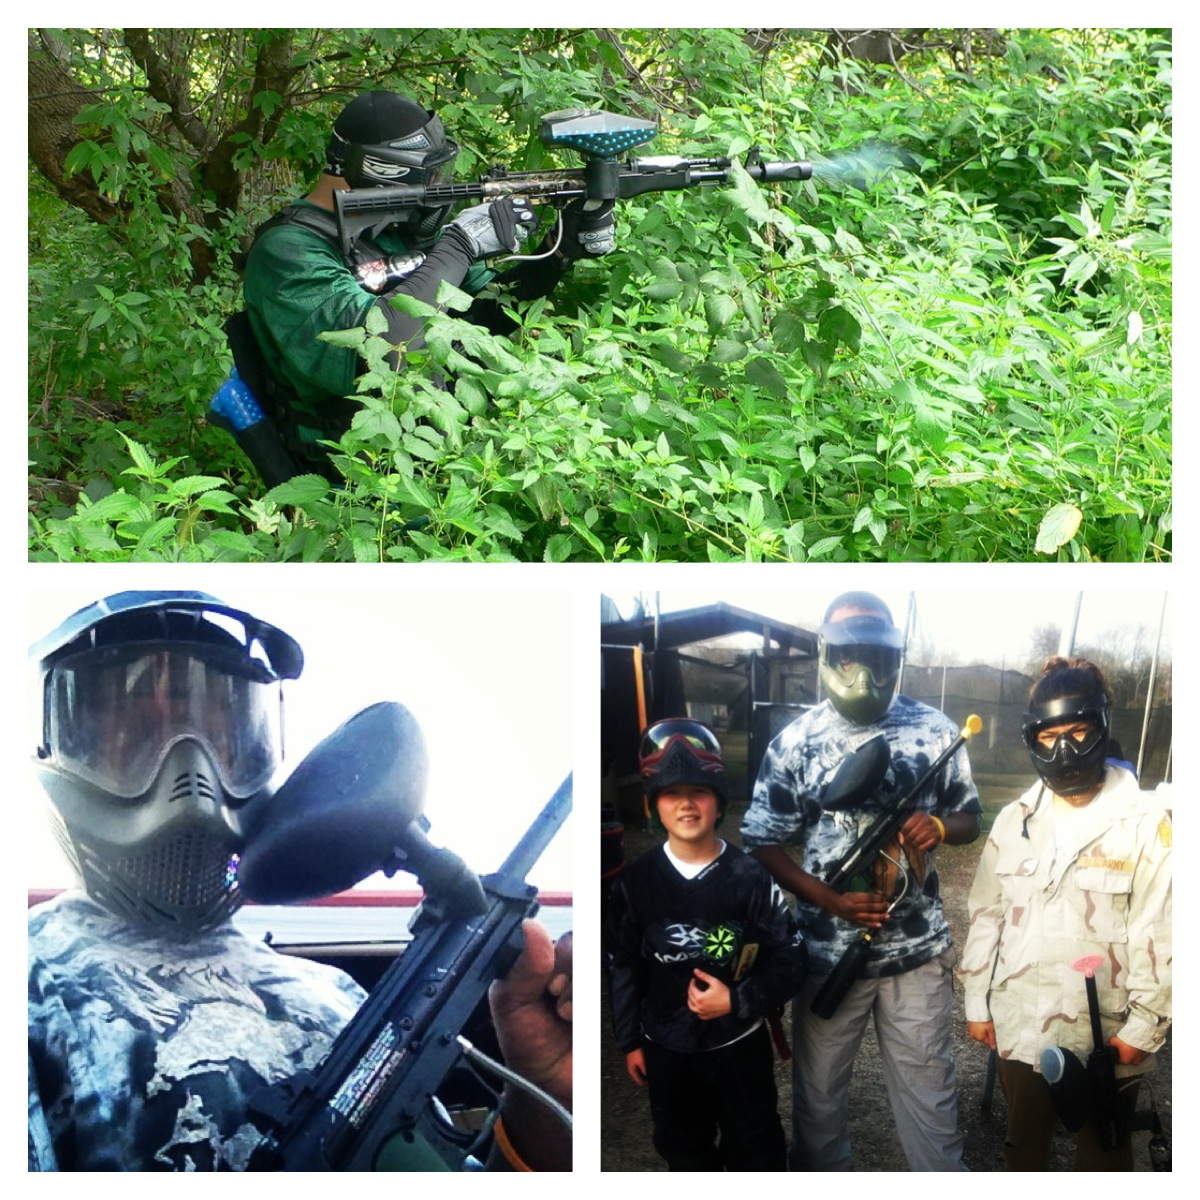 Last paintball session pic